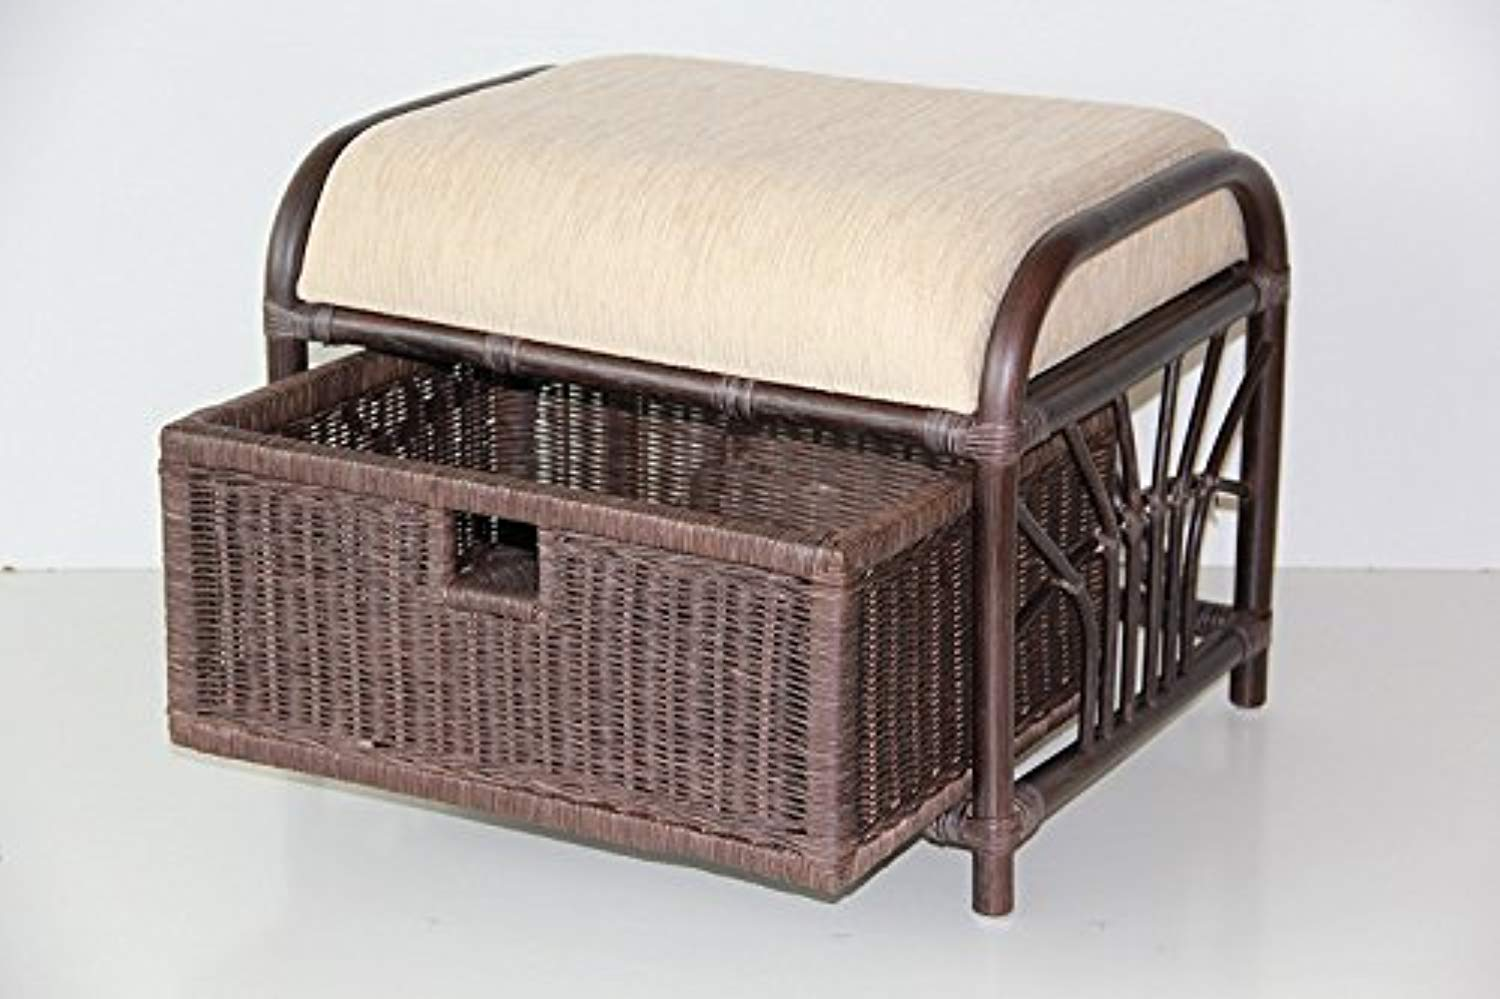 IRA Handmade Rattan Wicker Ottoman Footstool - IRA Furniture